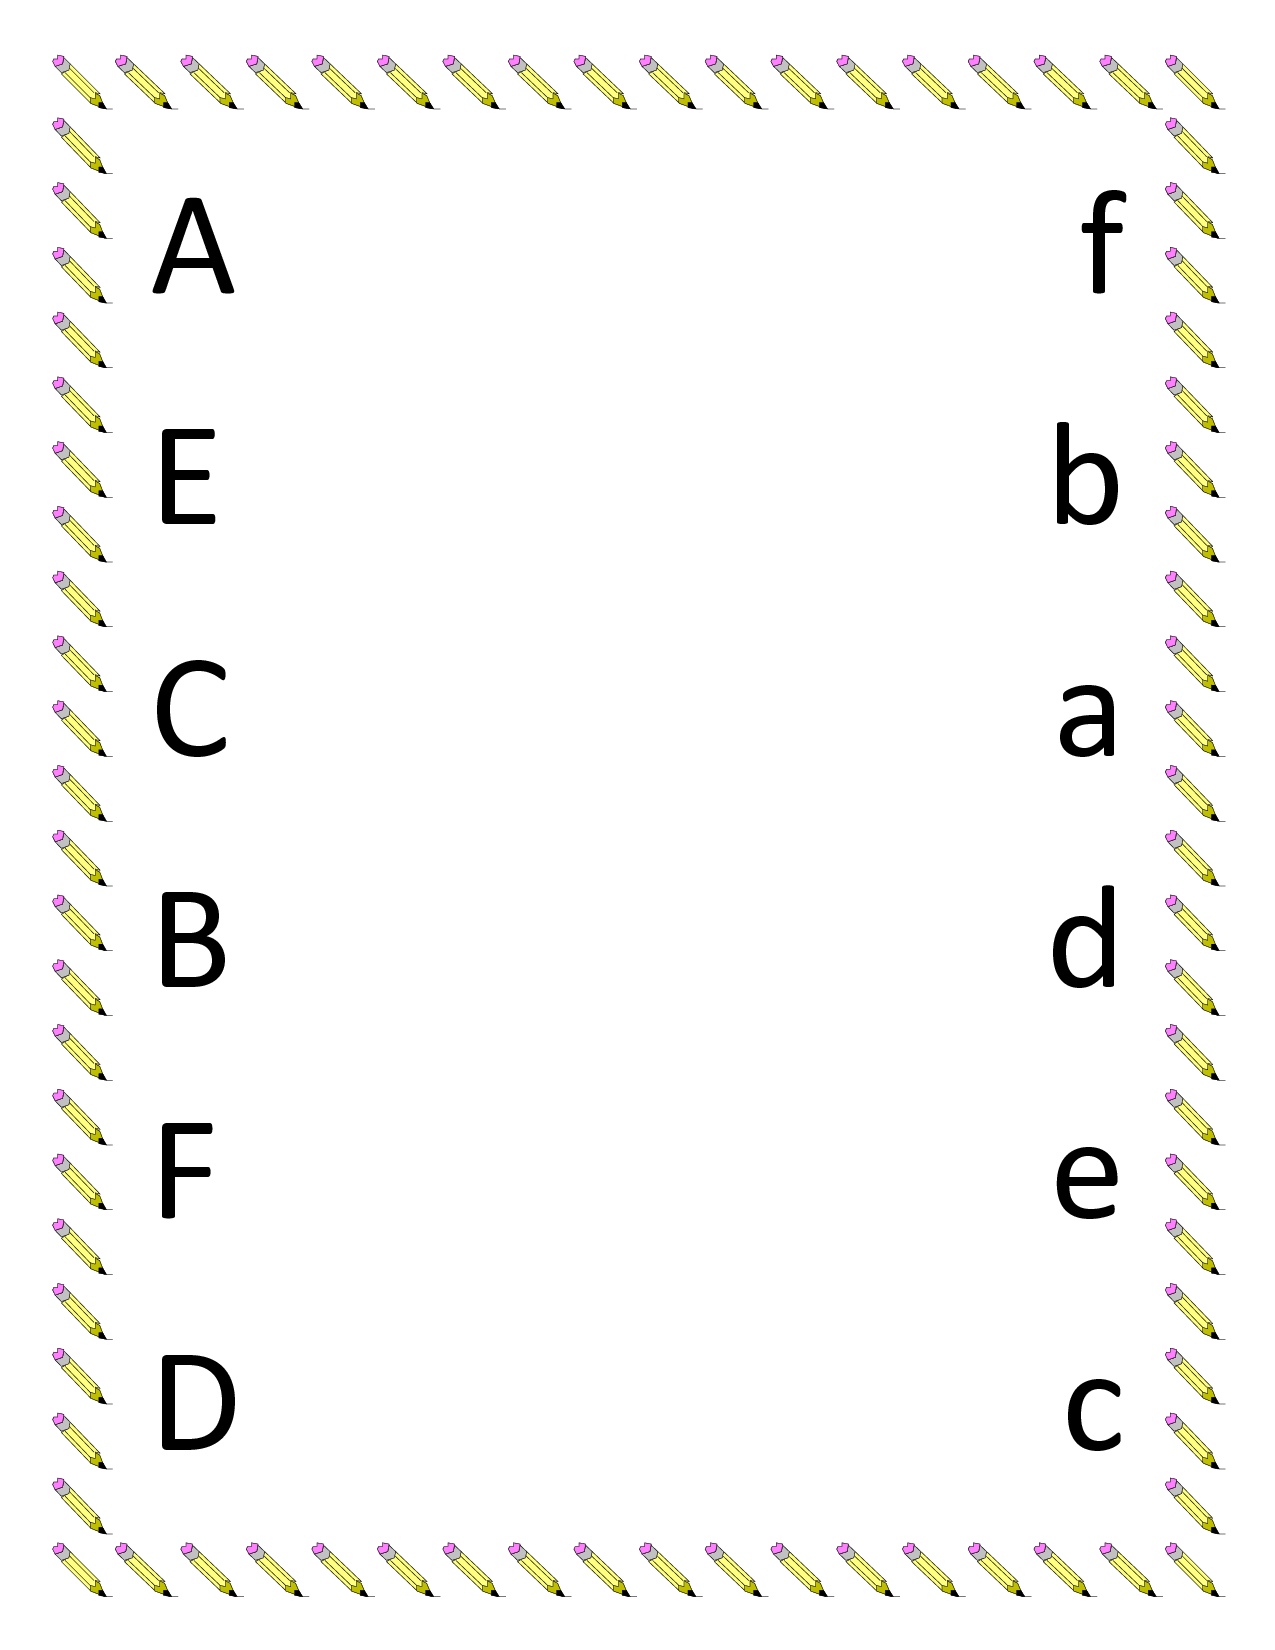 Alphabet Worksheets for Preschoolers – Letter Worksheets for Kindergarten